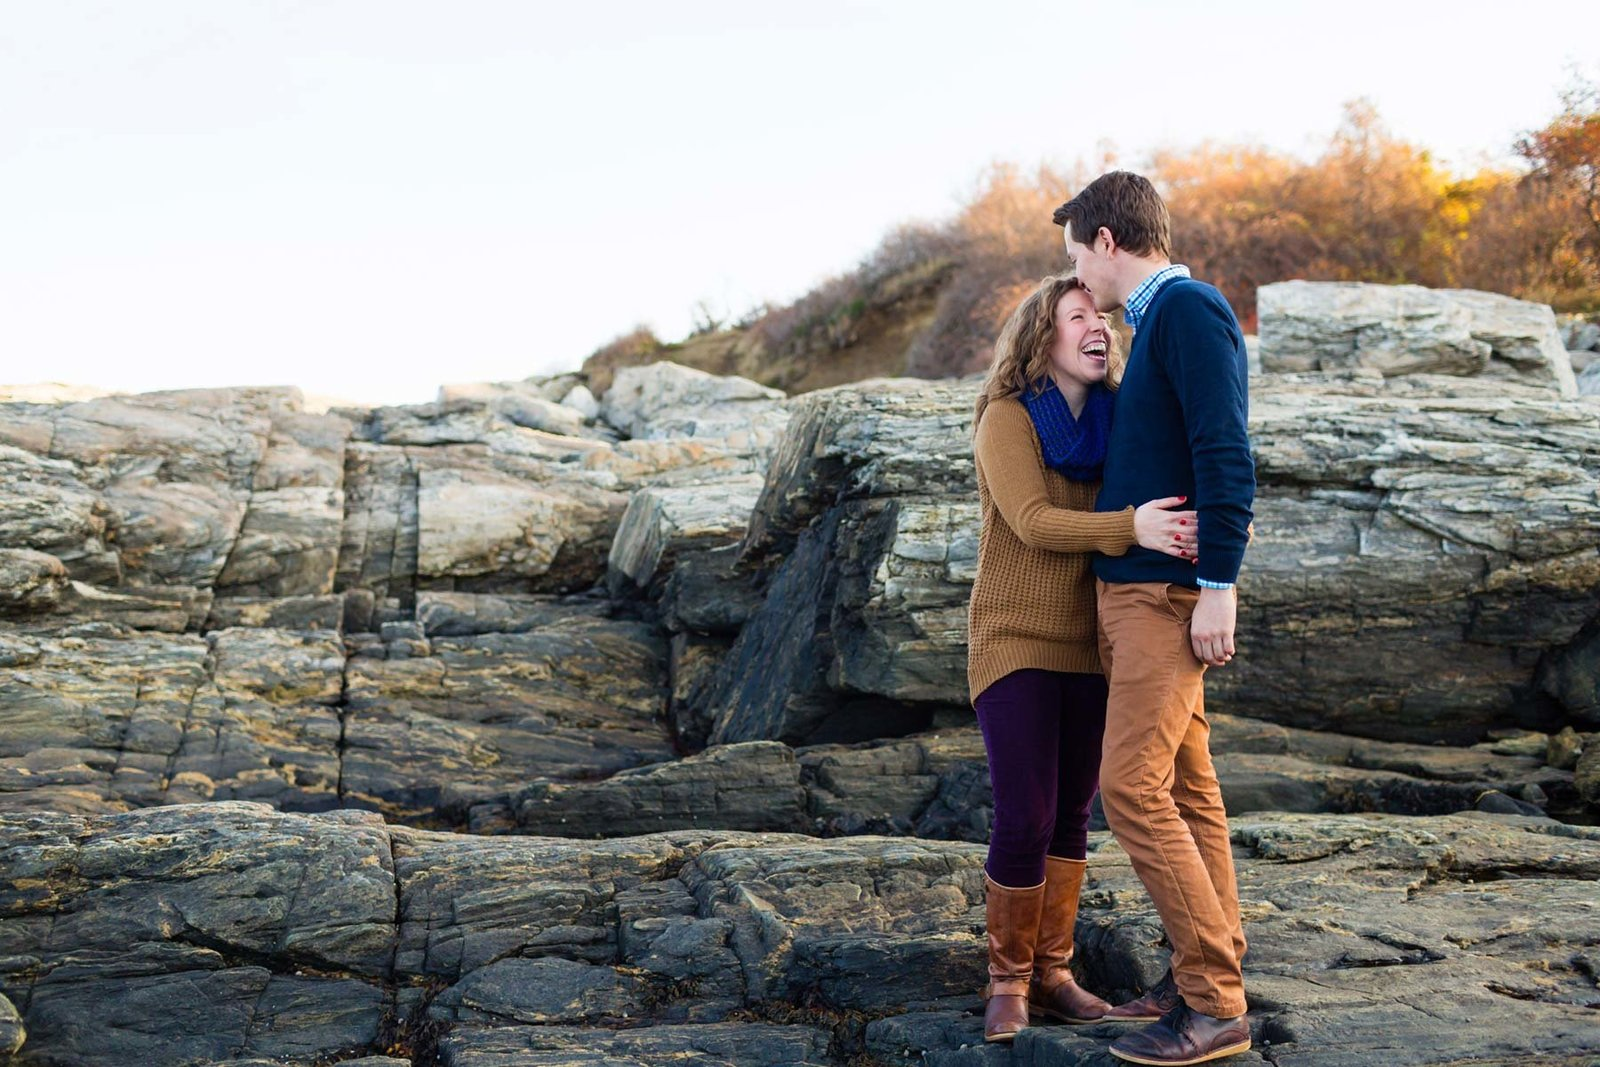 Cape Elizabeth Maine Wedding Photographers  Engagement Session Fort Williams  Park Fall Image I am Sarah V Photography